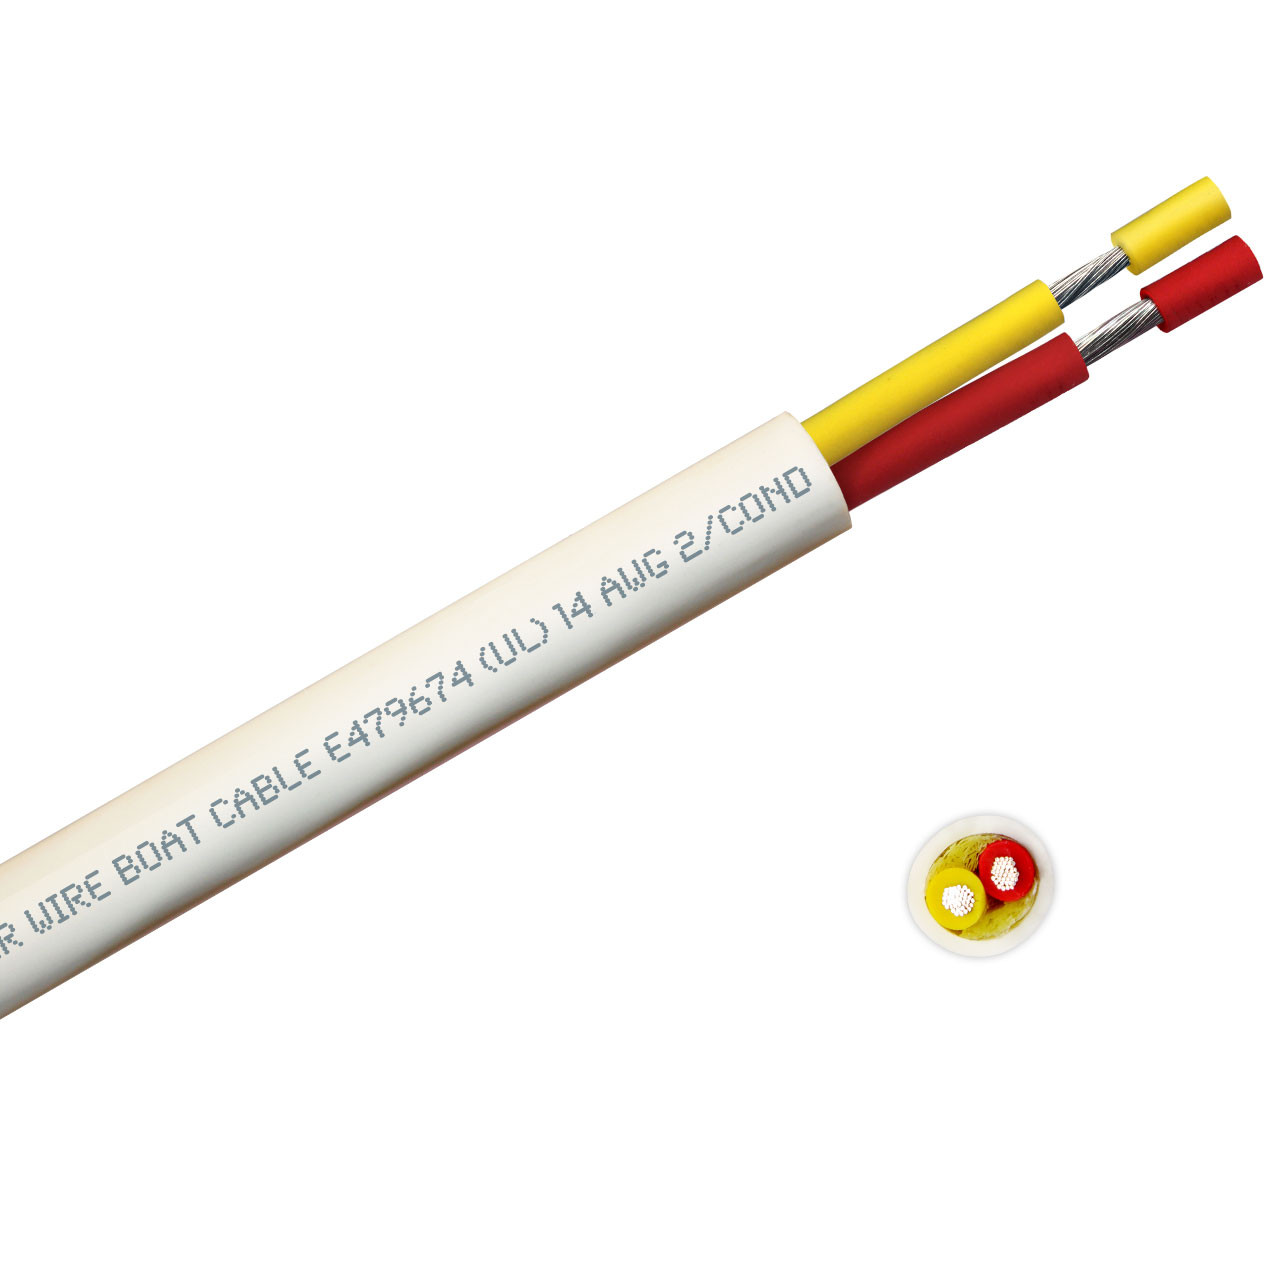 14 AWG ROUND DC DUPLEX BOAT CABLE 100 FT SPOOL YELLOW/RED